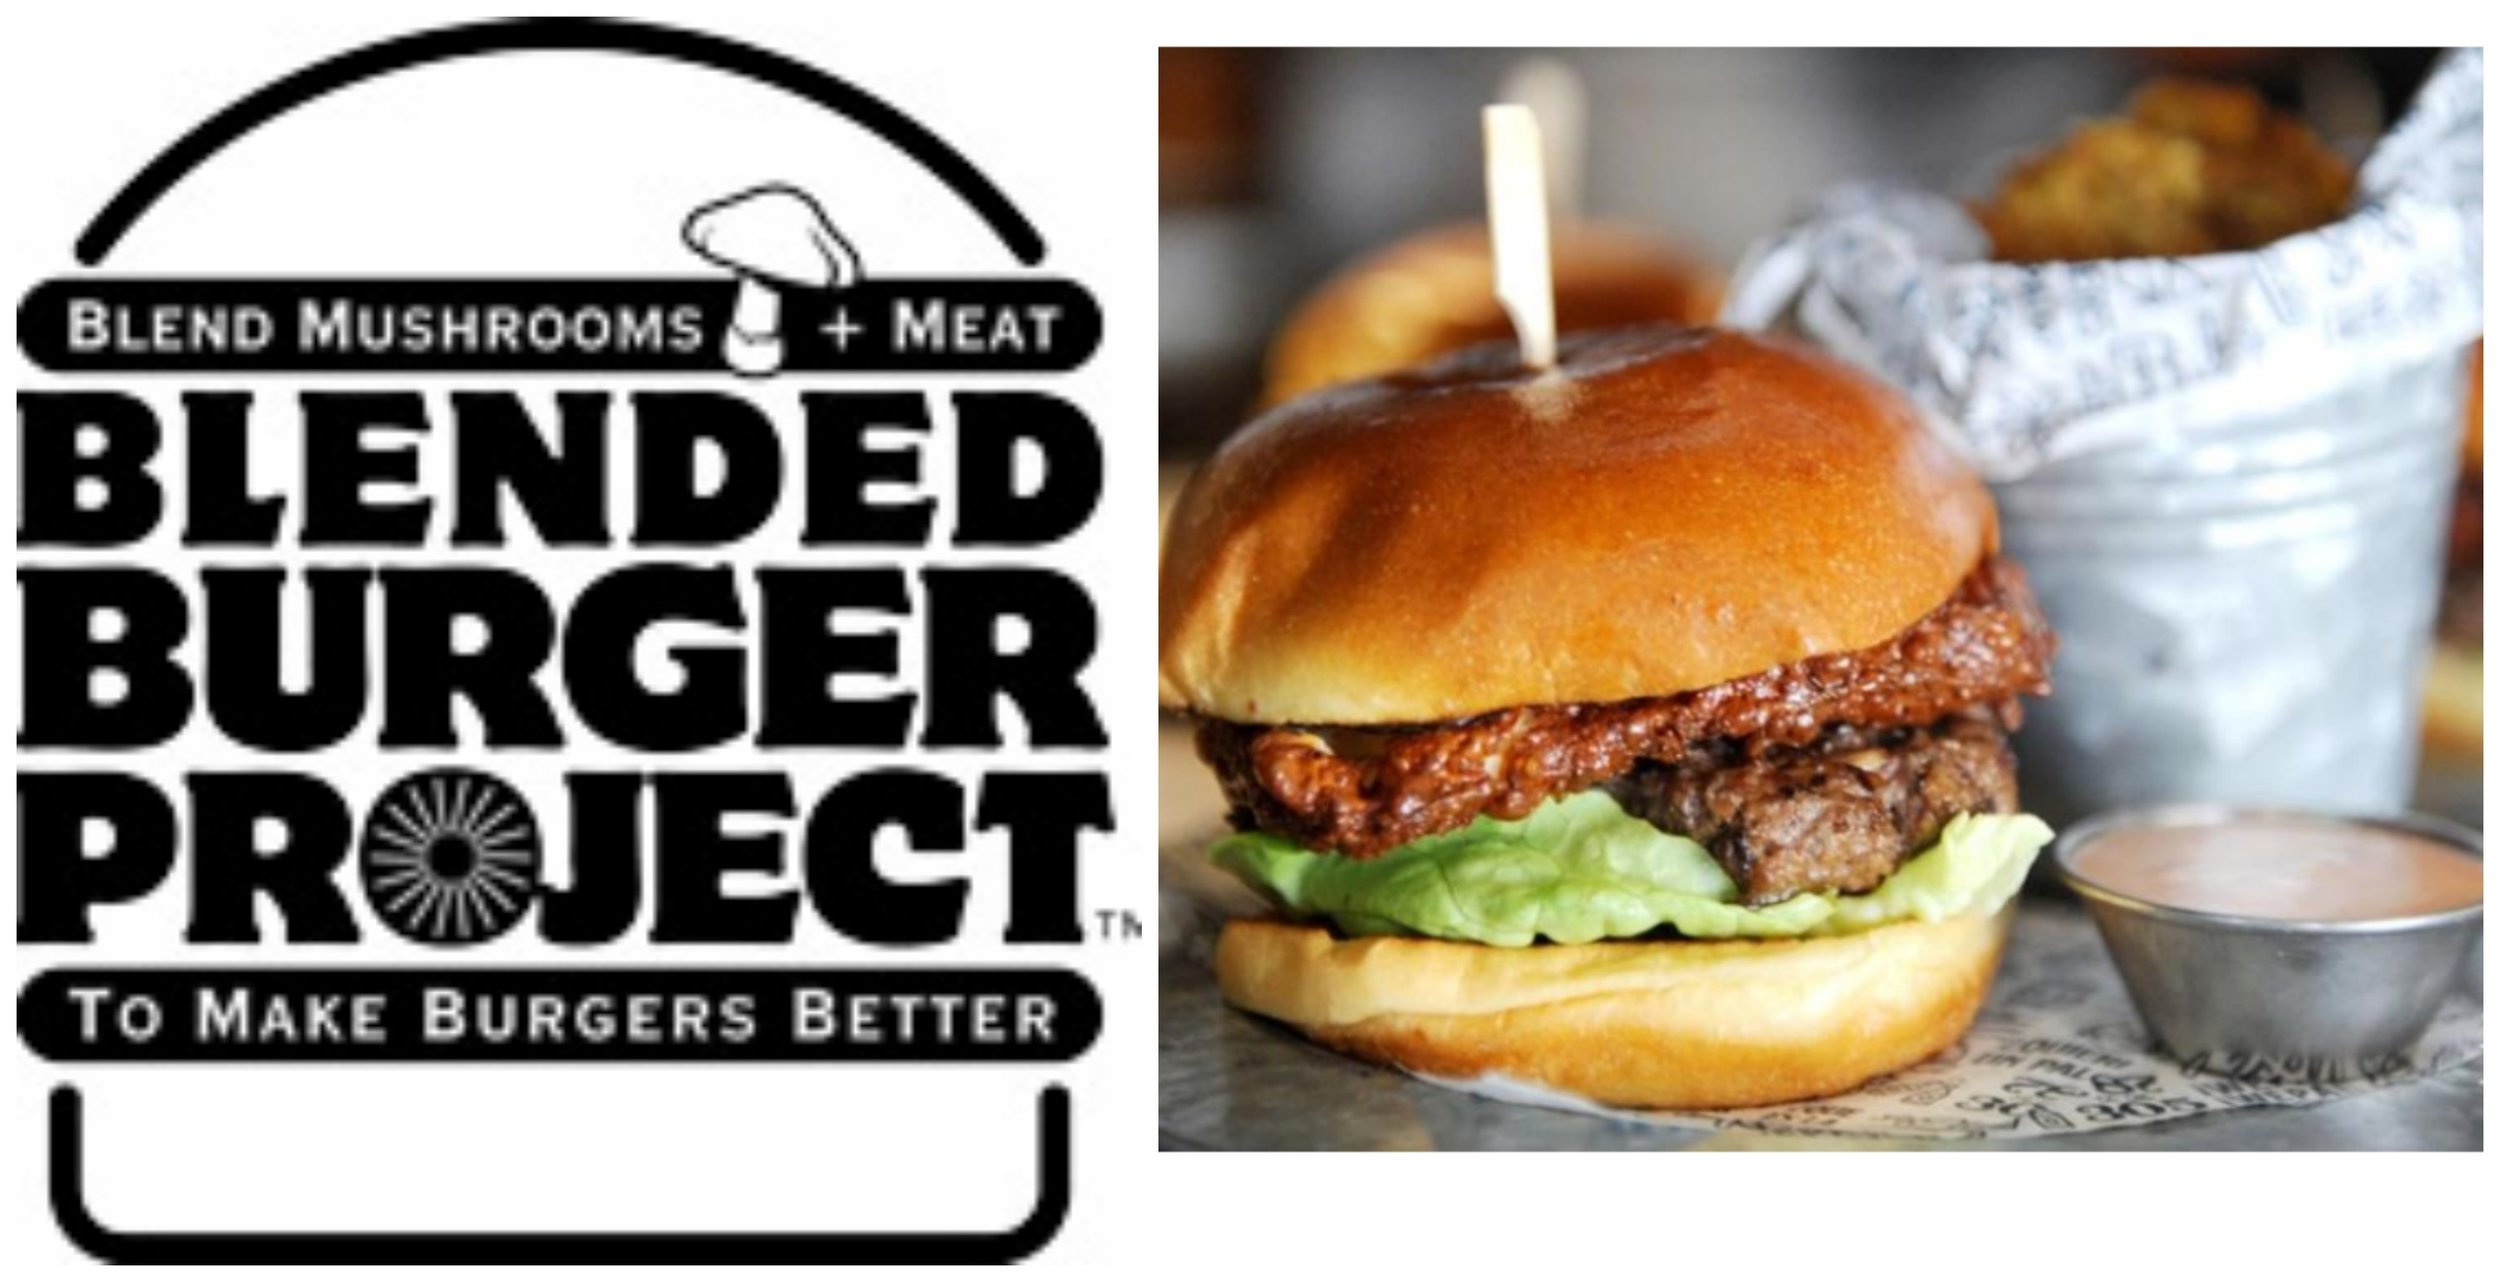 Blended Burger 2019 Collage .jpg